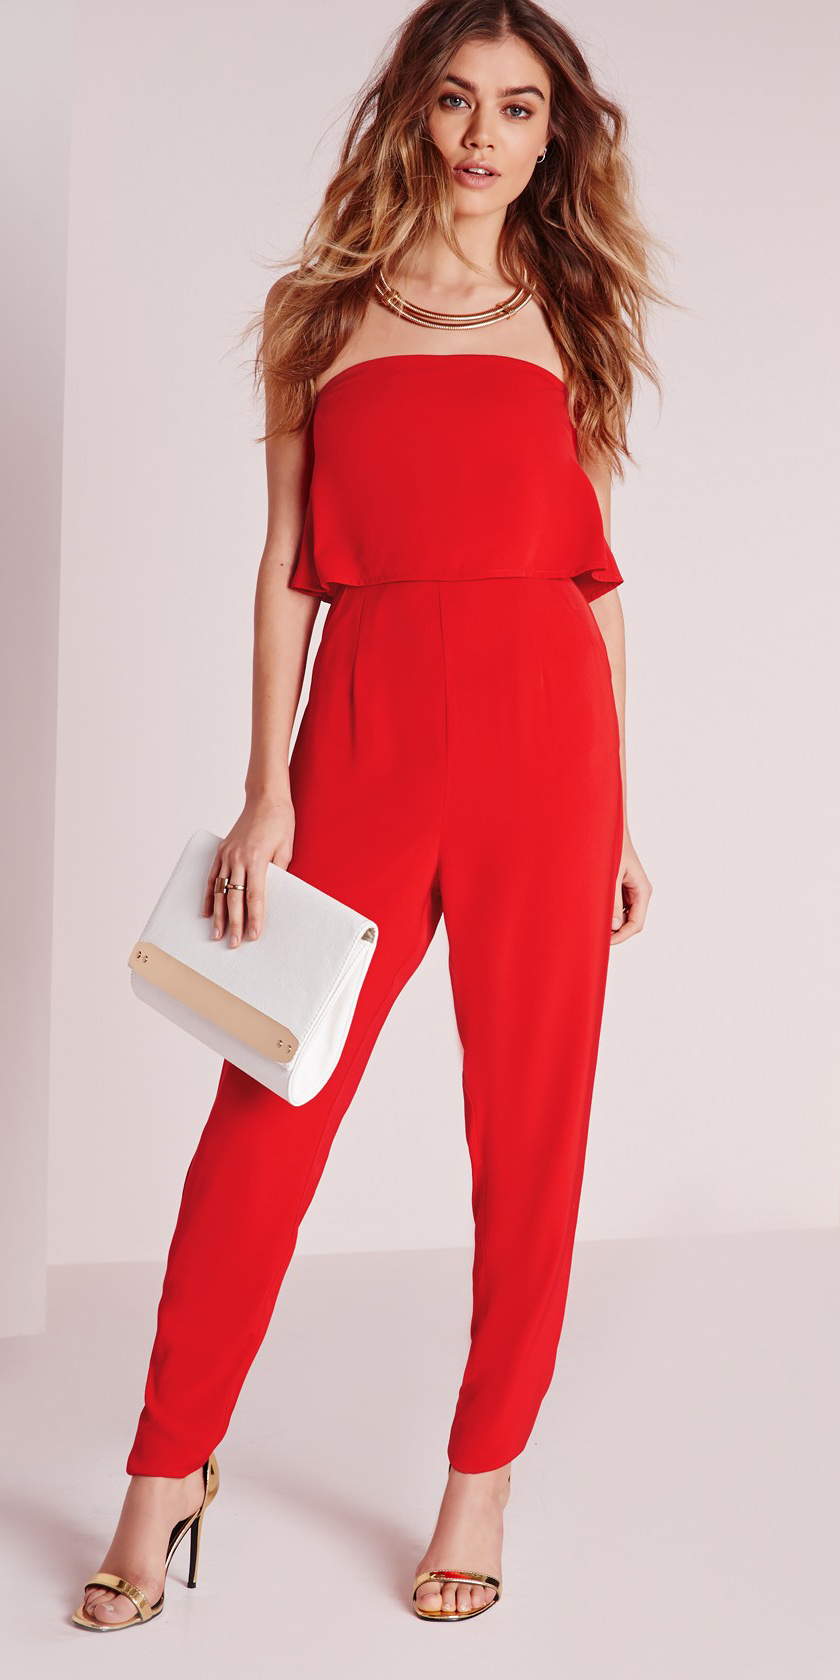 red-jumpsuit-white-bag-clutch-necklace-hairr-tan-shoe-sandalh-gold-strapless-fall-winter-dinner.jpg